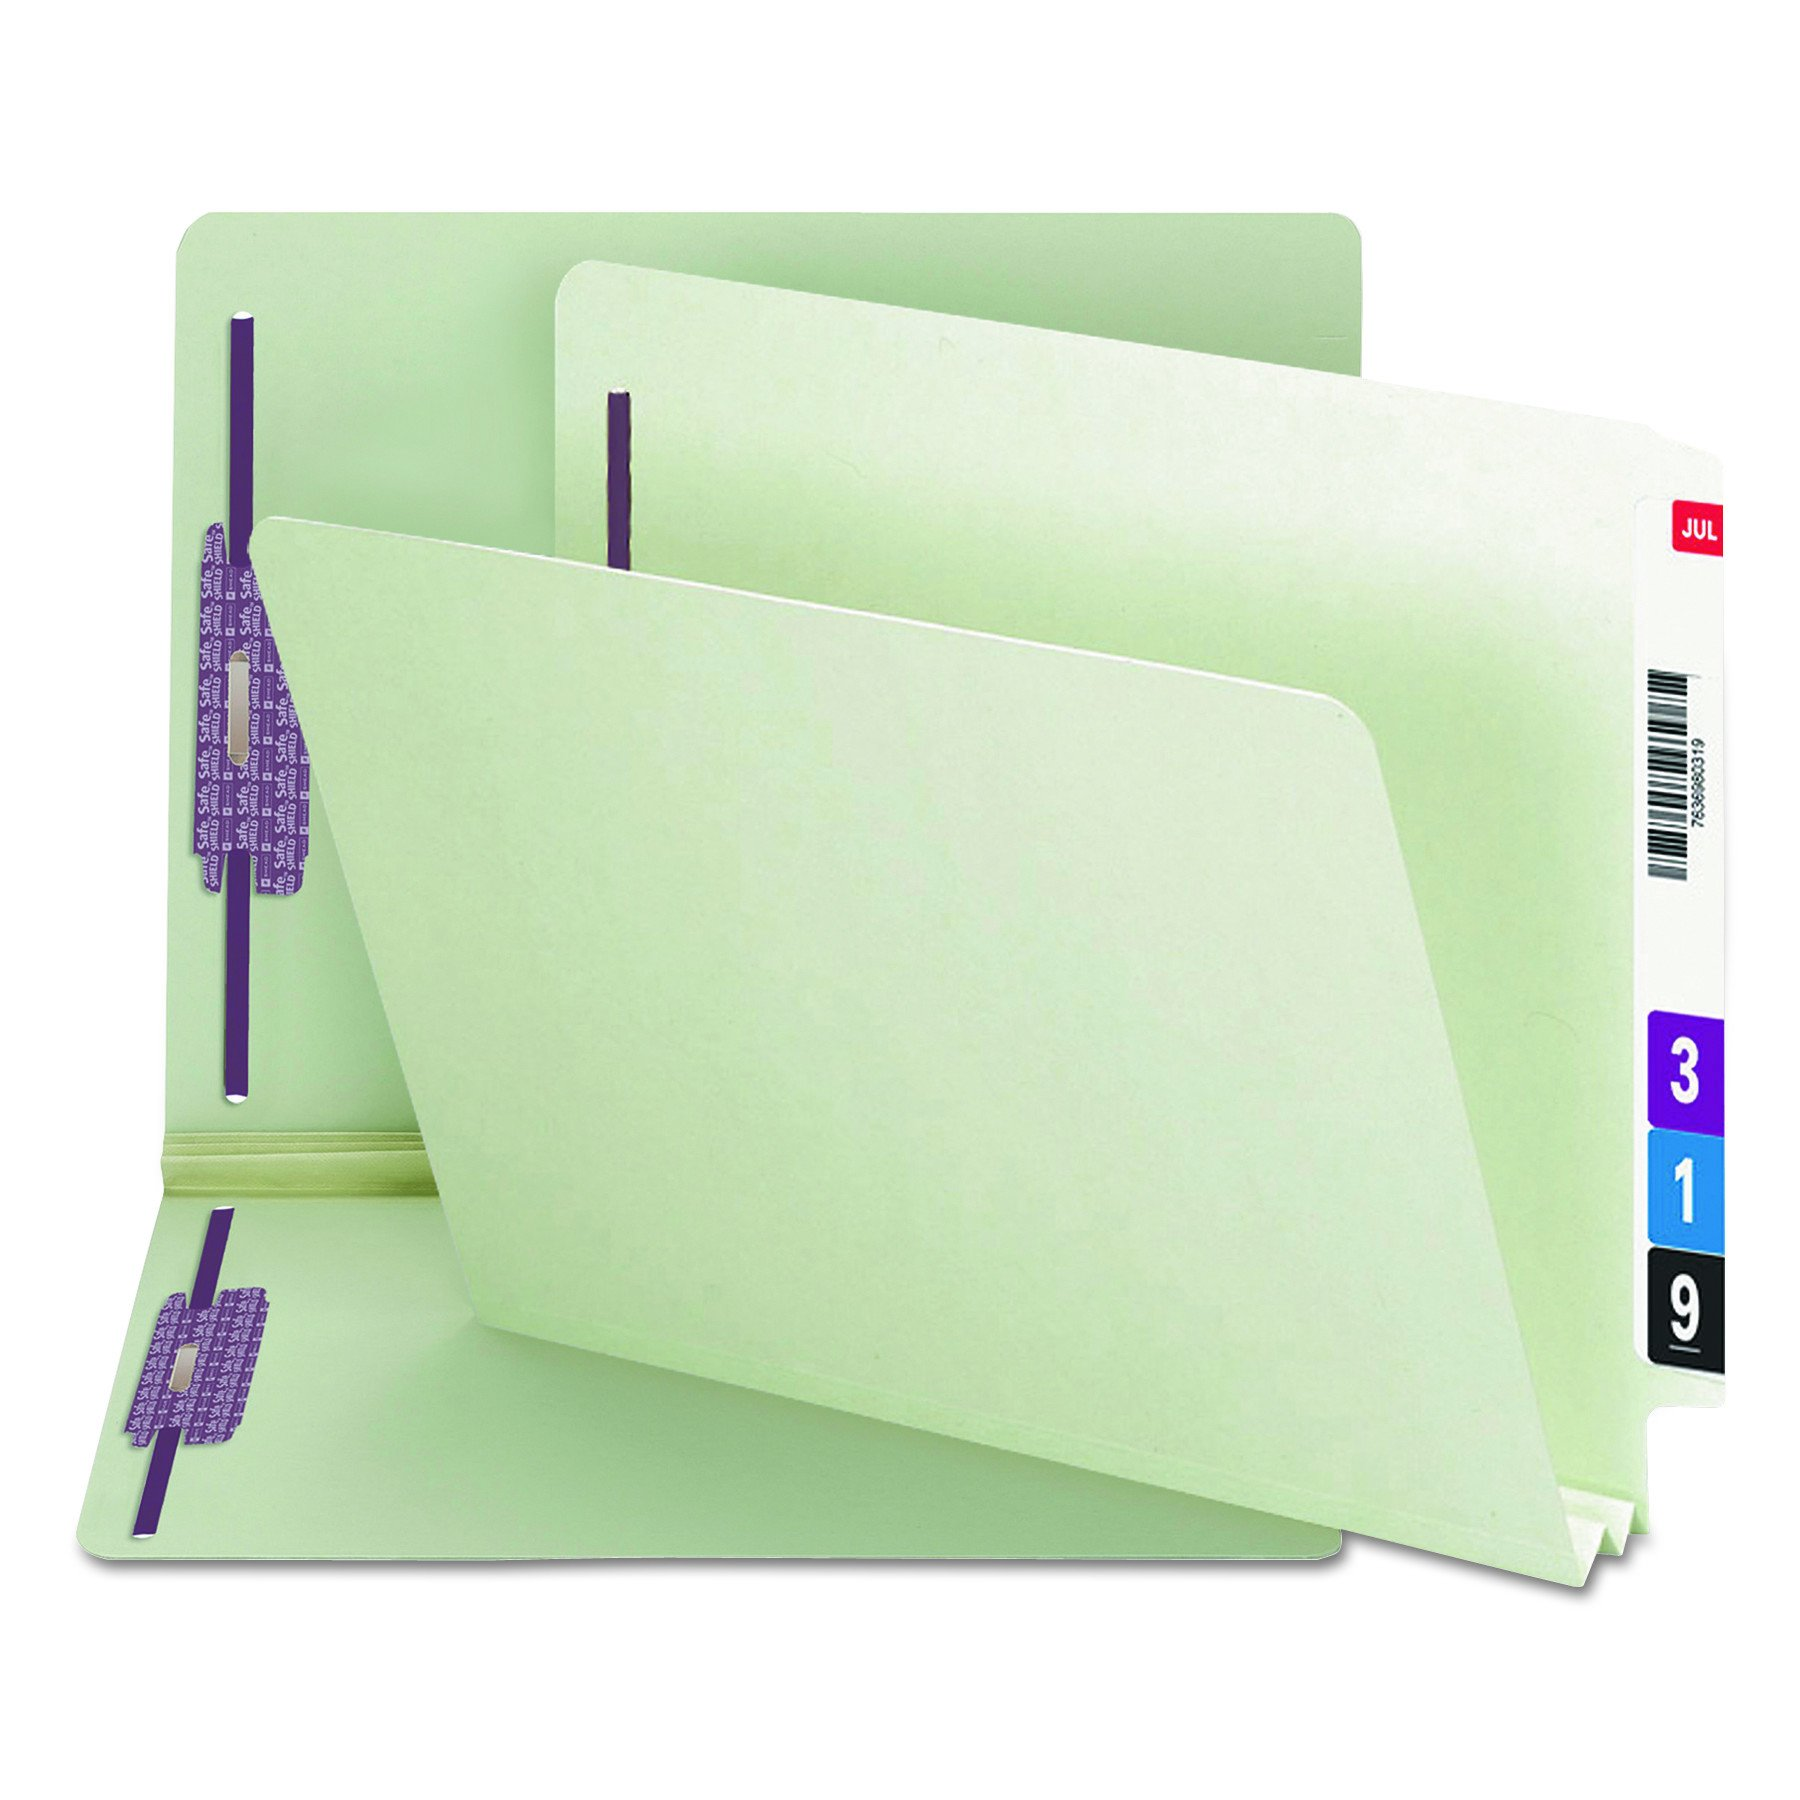 Smead End Tab Pressboard Fastener File Folder with SafeSHIELD Fasteners, 2 Fasteners, 2'' Expansion, Letter Size, Gray/Green, 25 per Box (34715)